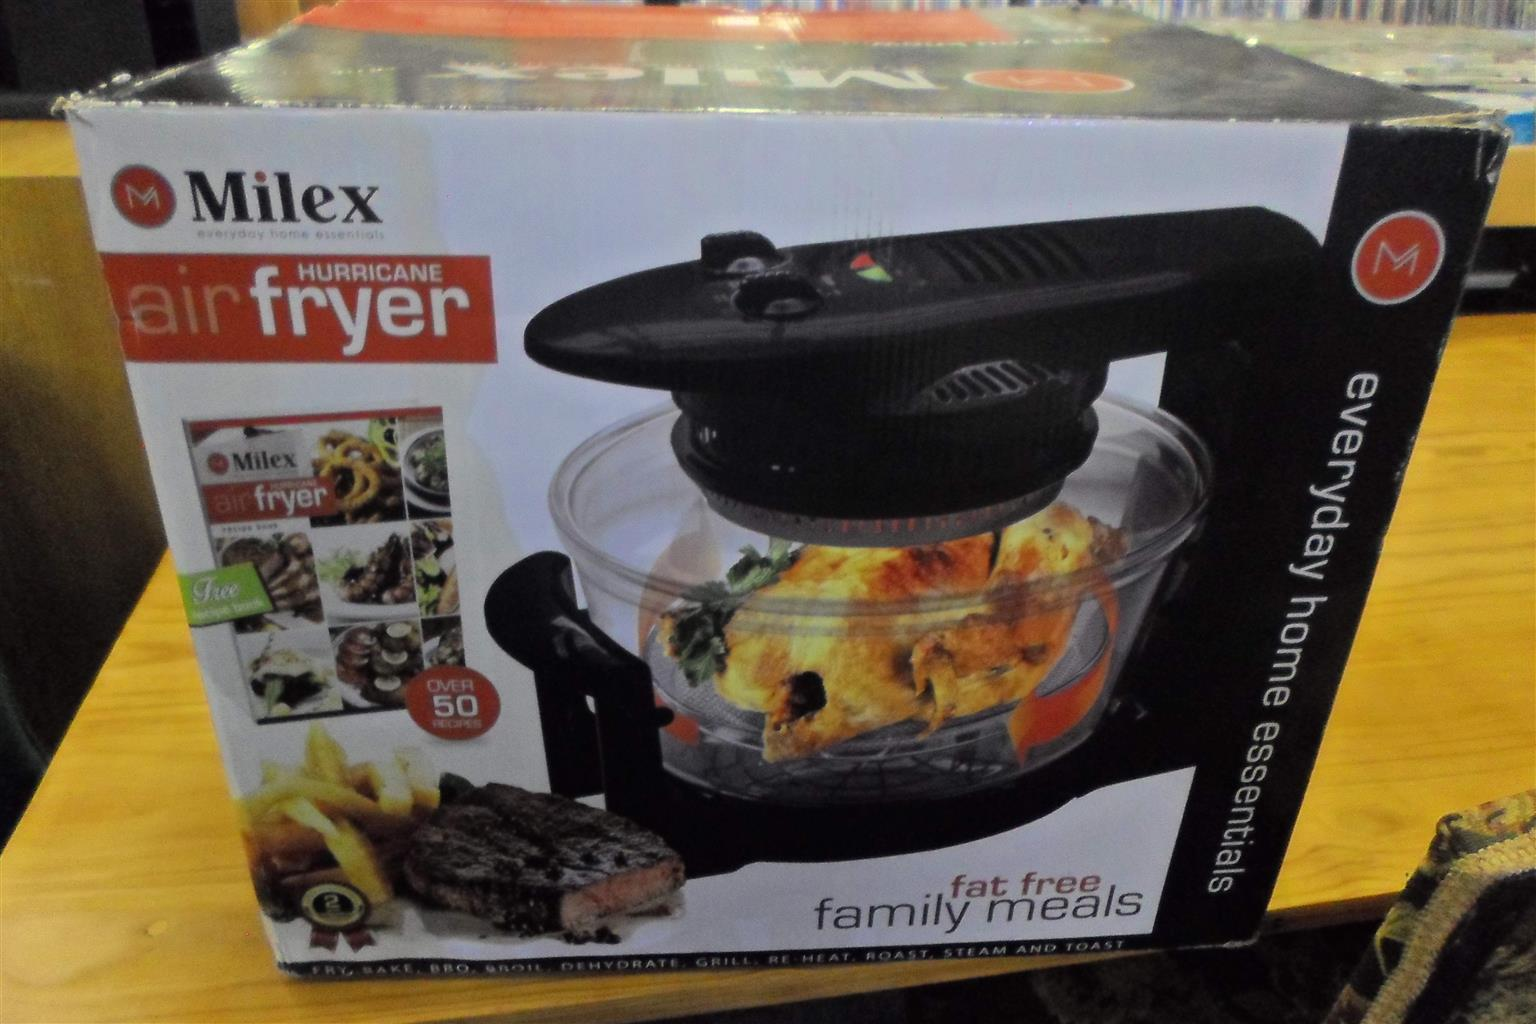 Milex Hurrican Air Fryer - B033043391-42